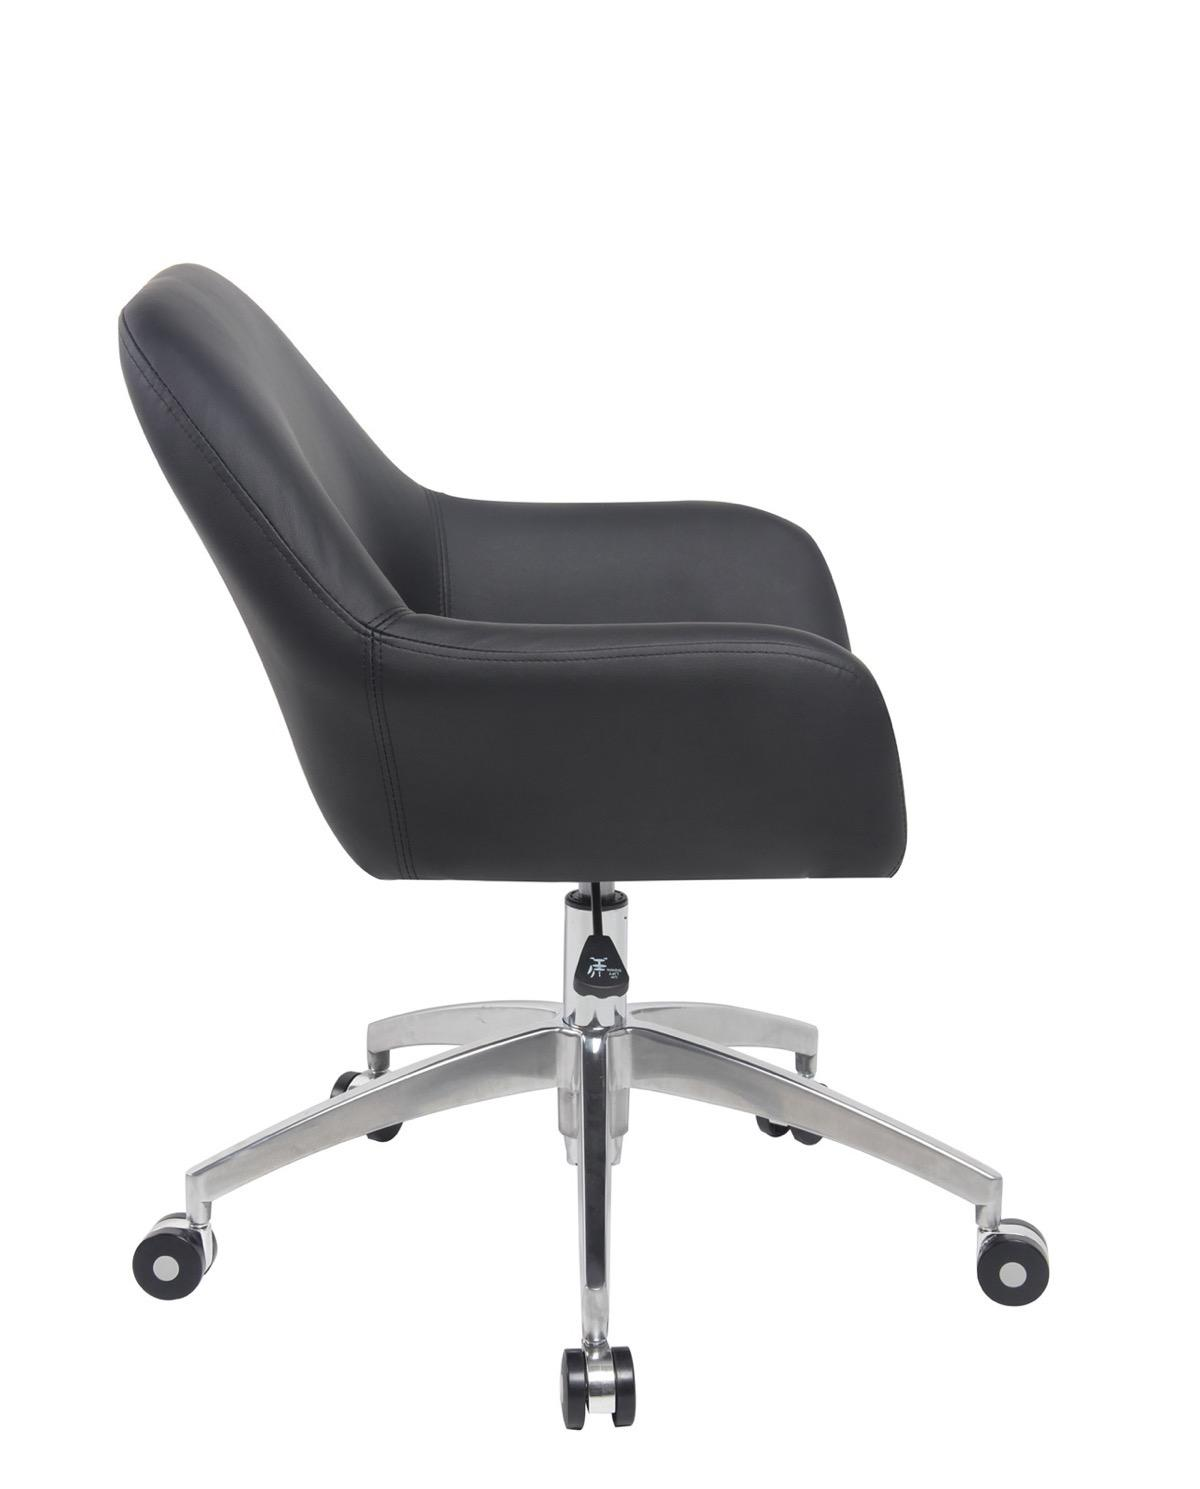 Capa chaise de bureau design pi tement alu poli for Chaise de bureau design